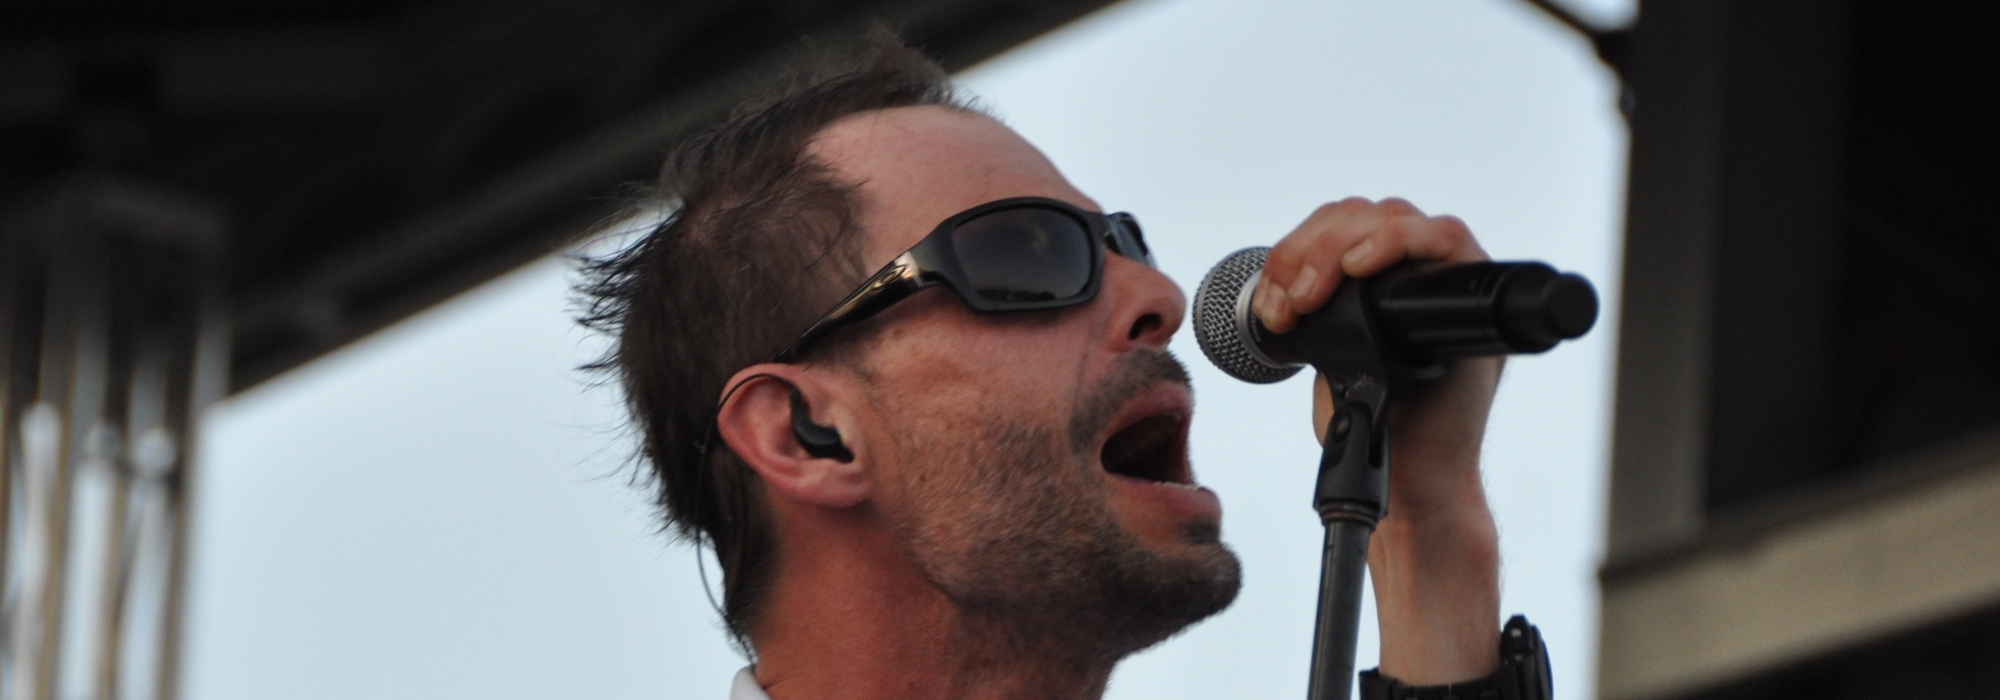 A Gin Blossoms live event